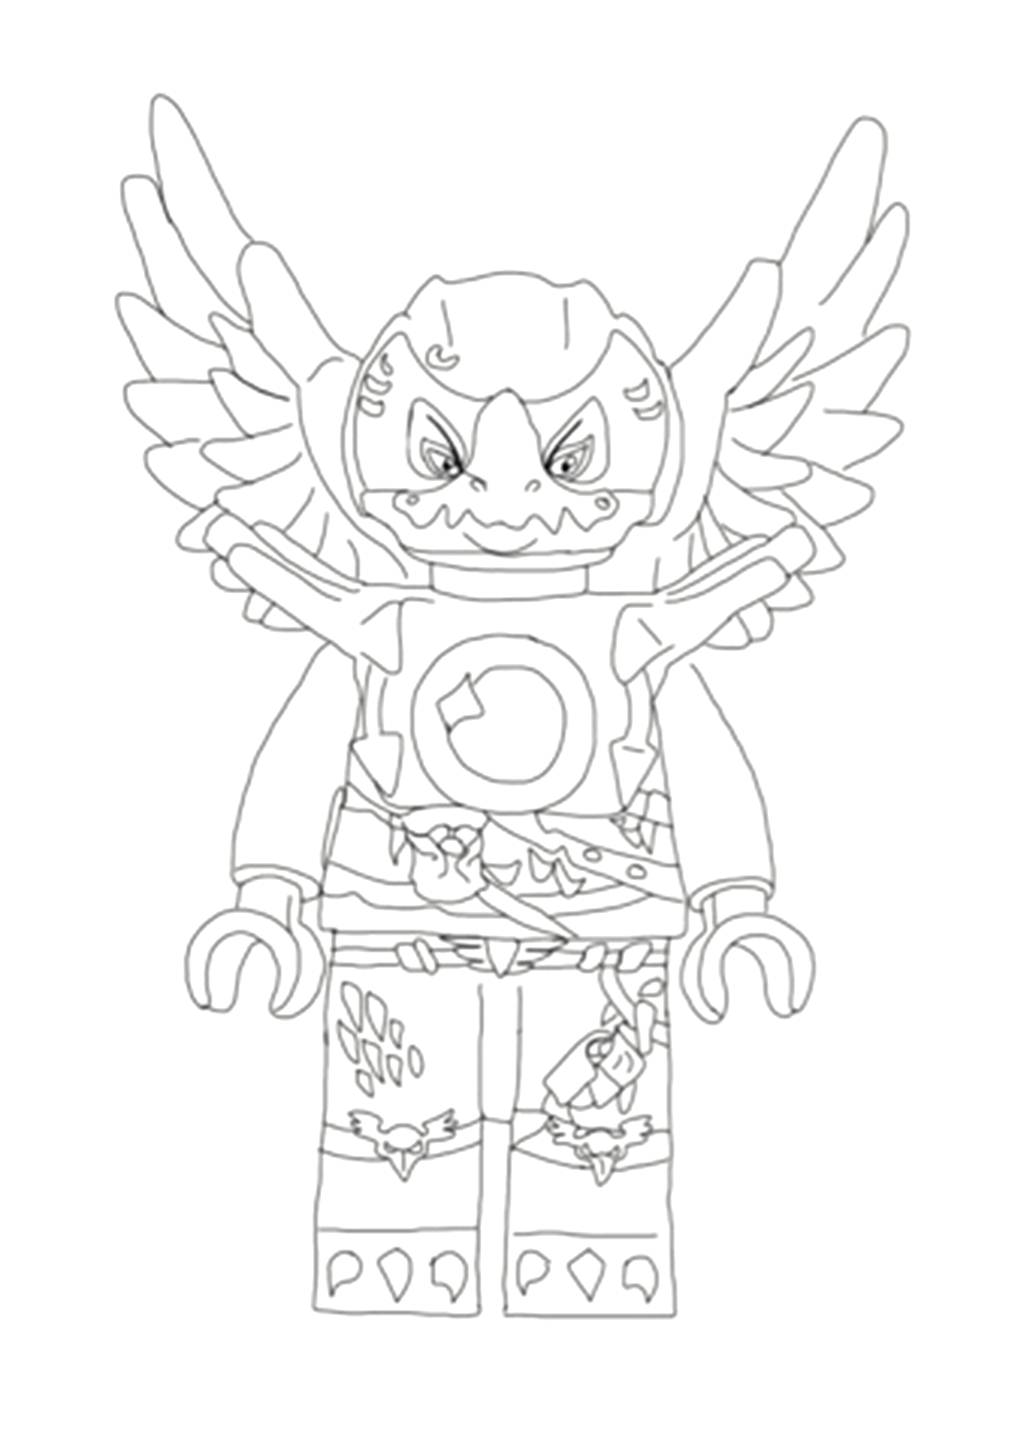 lego chima coloring pages pdf – littapes.com | 1450x1024